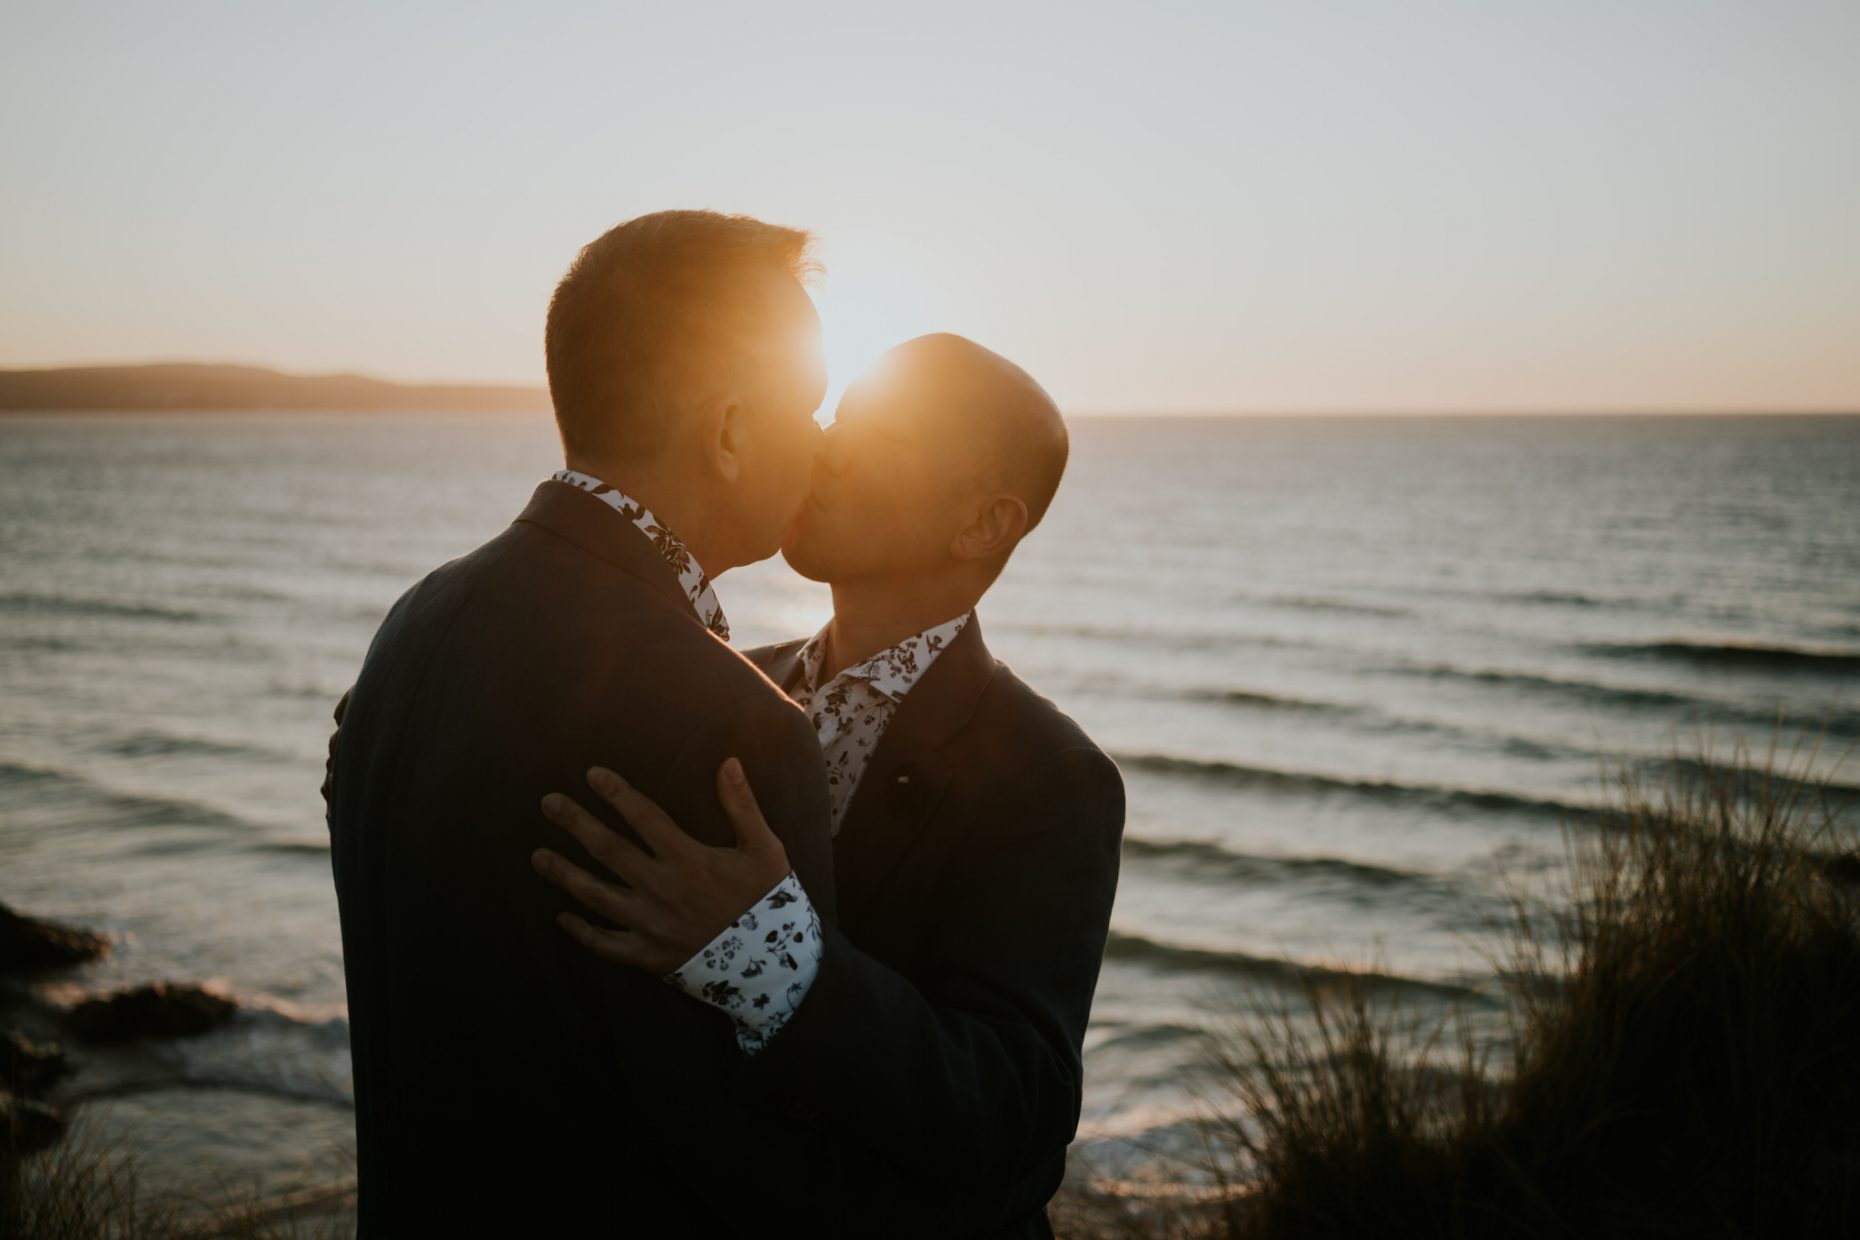 two men kiss on a dramatic beach as the sun sets behind them lighting up the sea